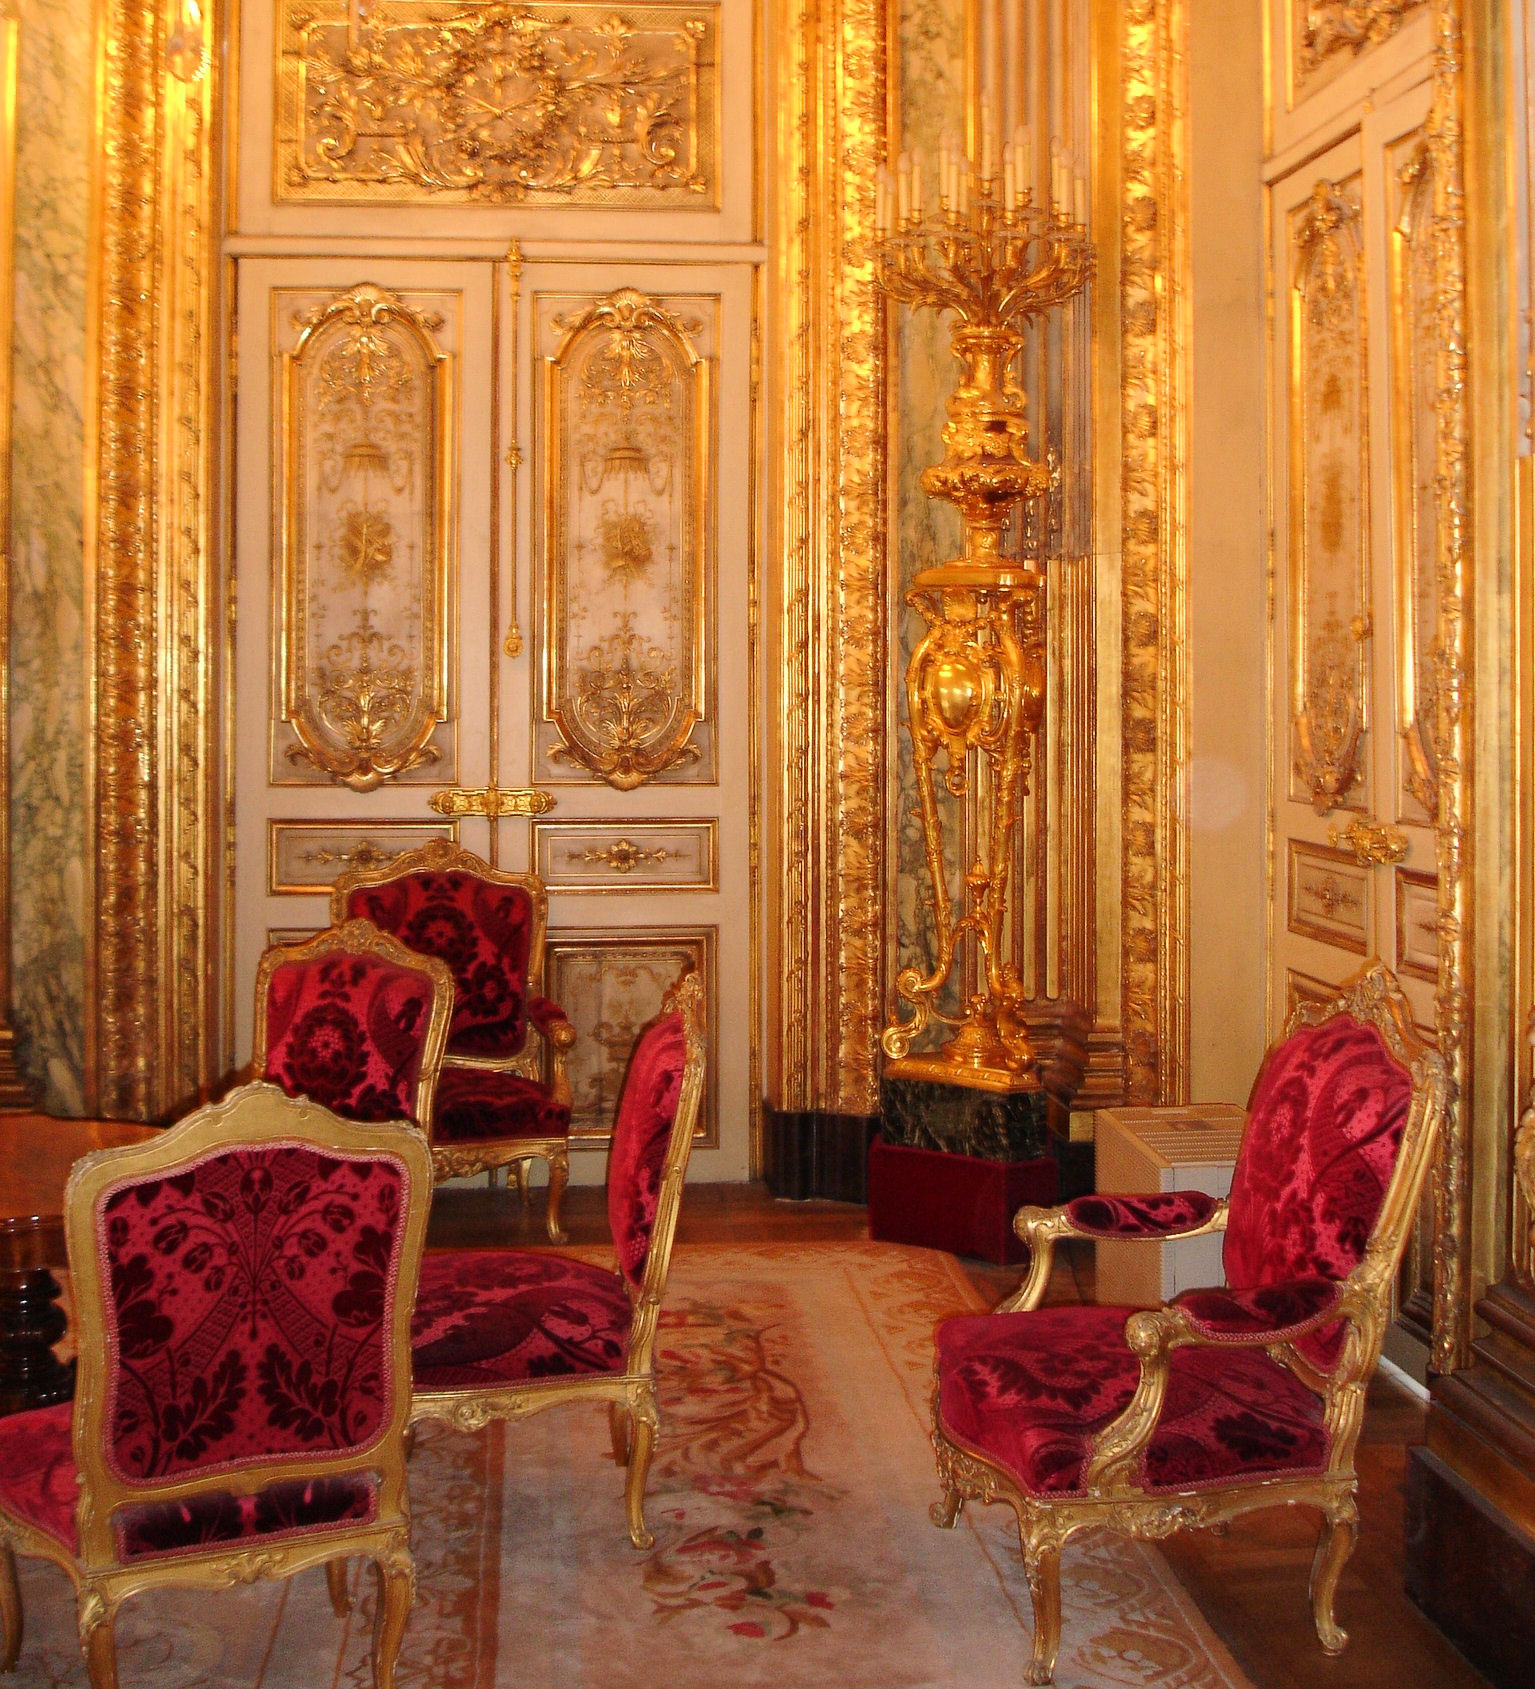 File louvre appartements napoleon iii grand for 3 fifty eight salon